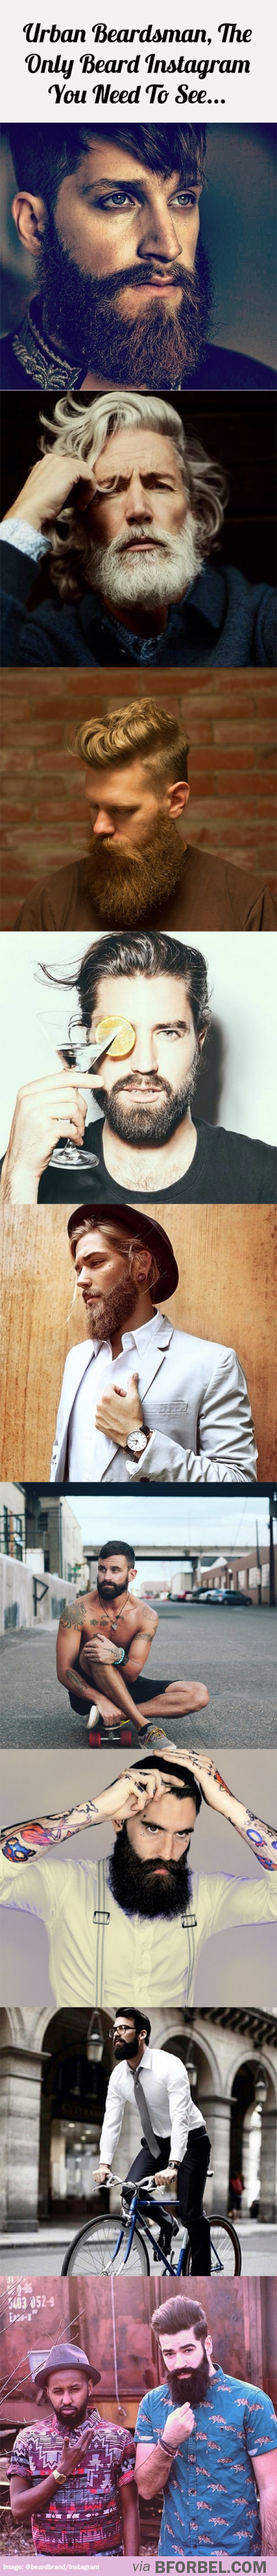 This Is The Only Beard Instagram You Need To See…